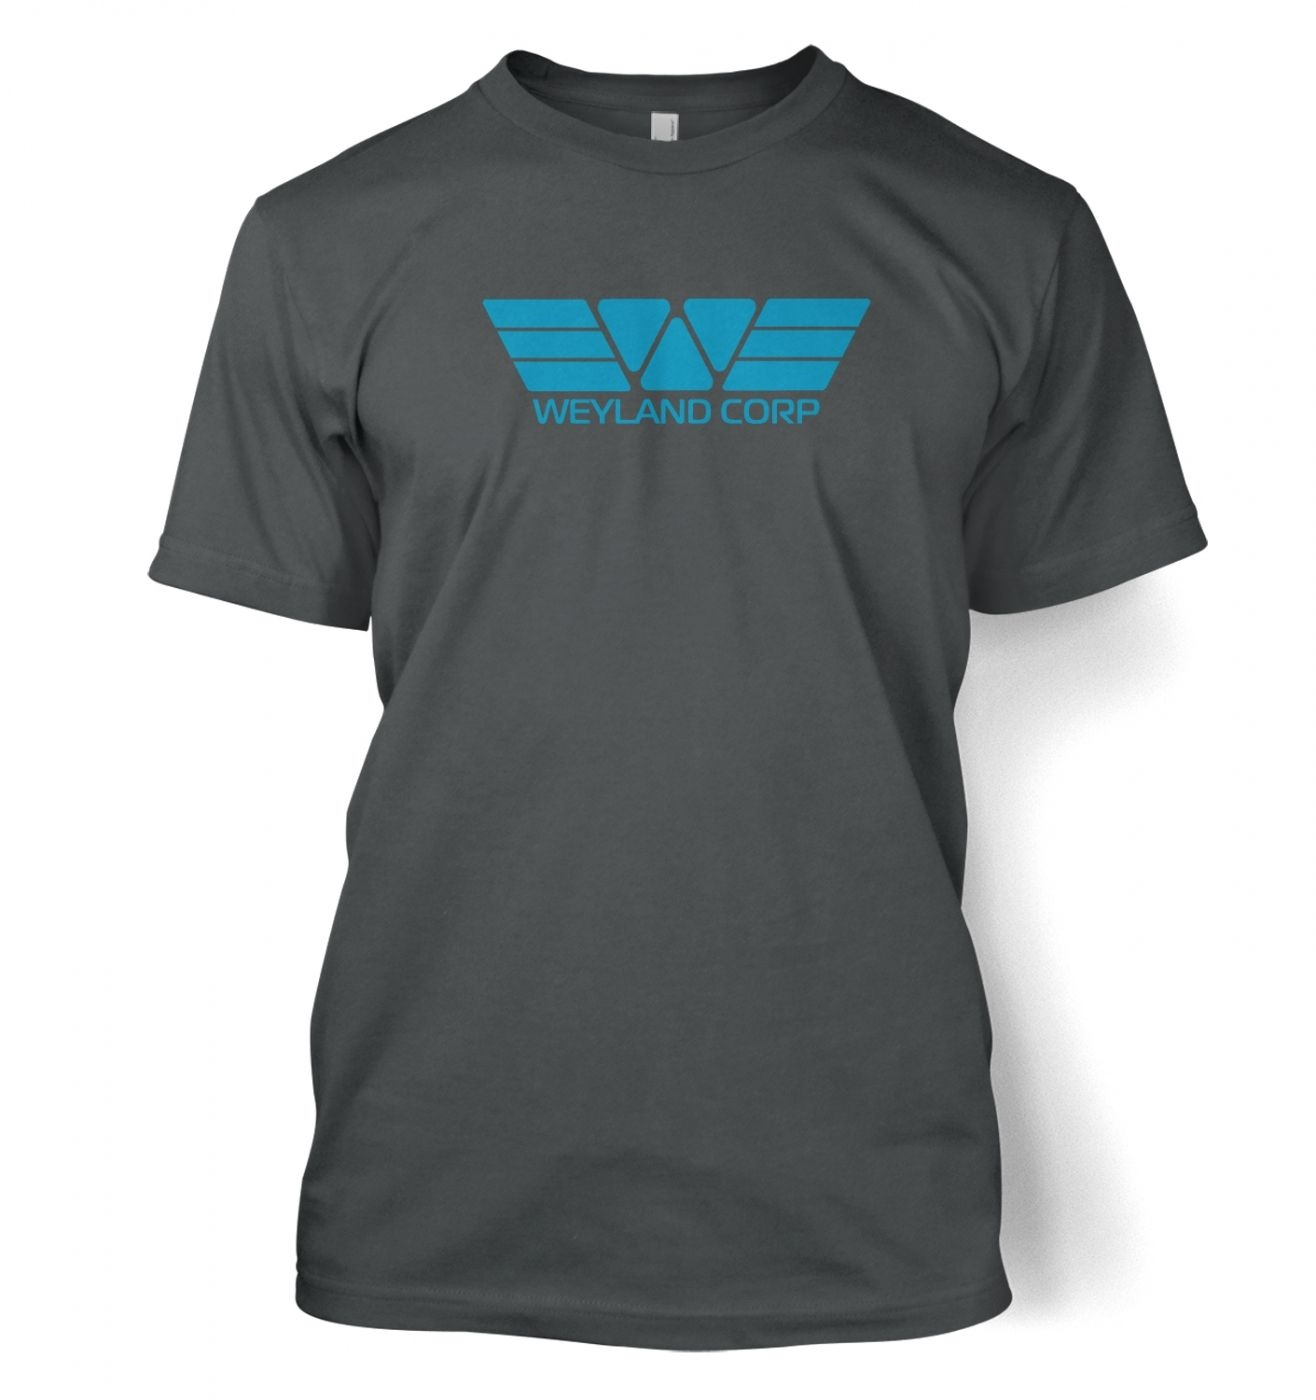 Weyland Corp (blue) men's t-shirt